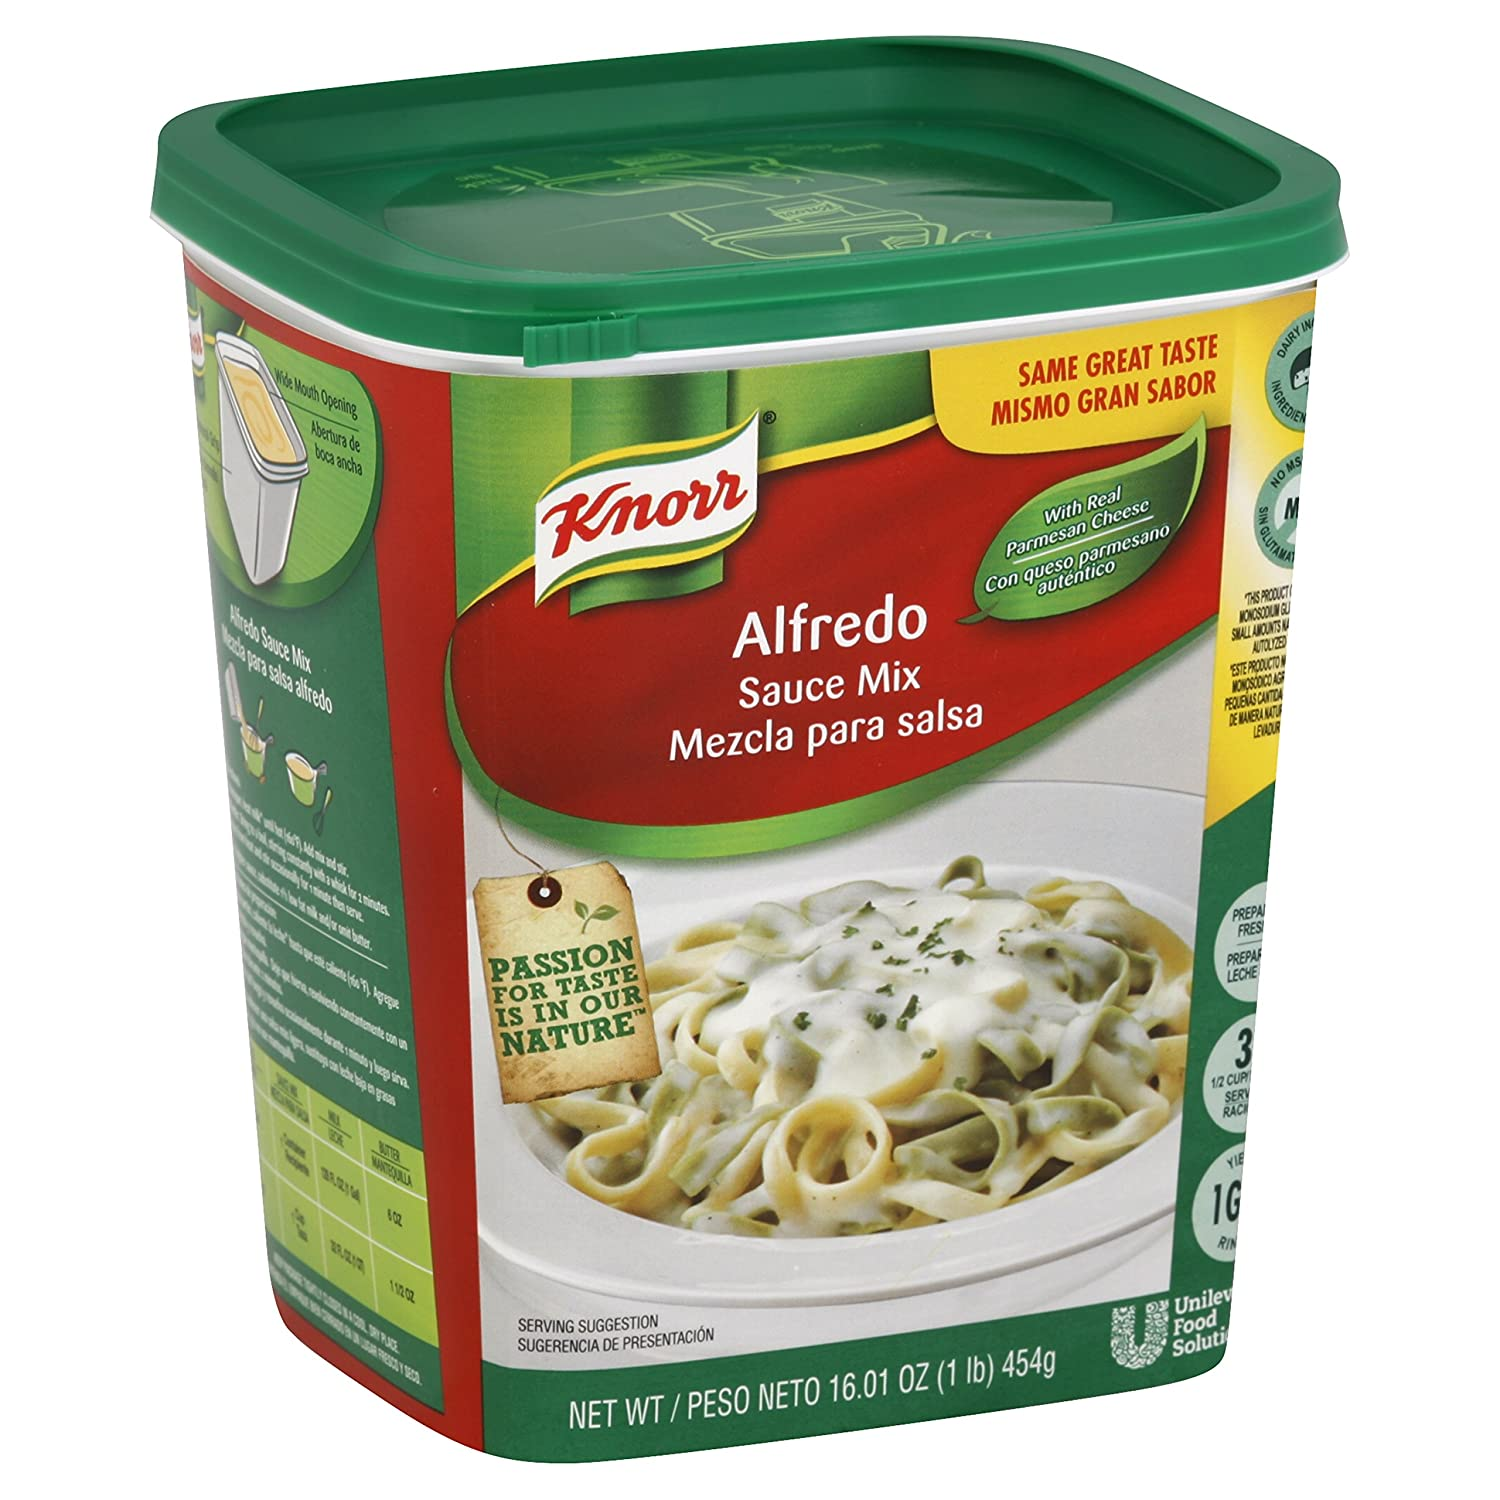 Amazon.com : Knorr Foodservice Powder Mix Alfredo Sauce 4 lb (Pack of 4) : Grocery & Gourmet Food